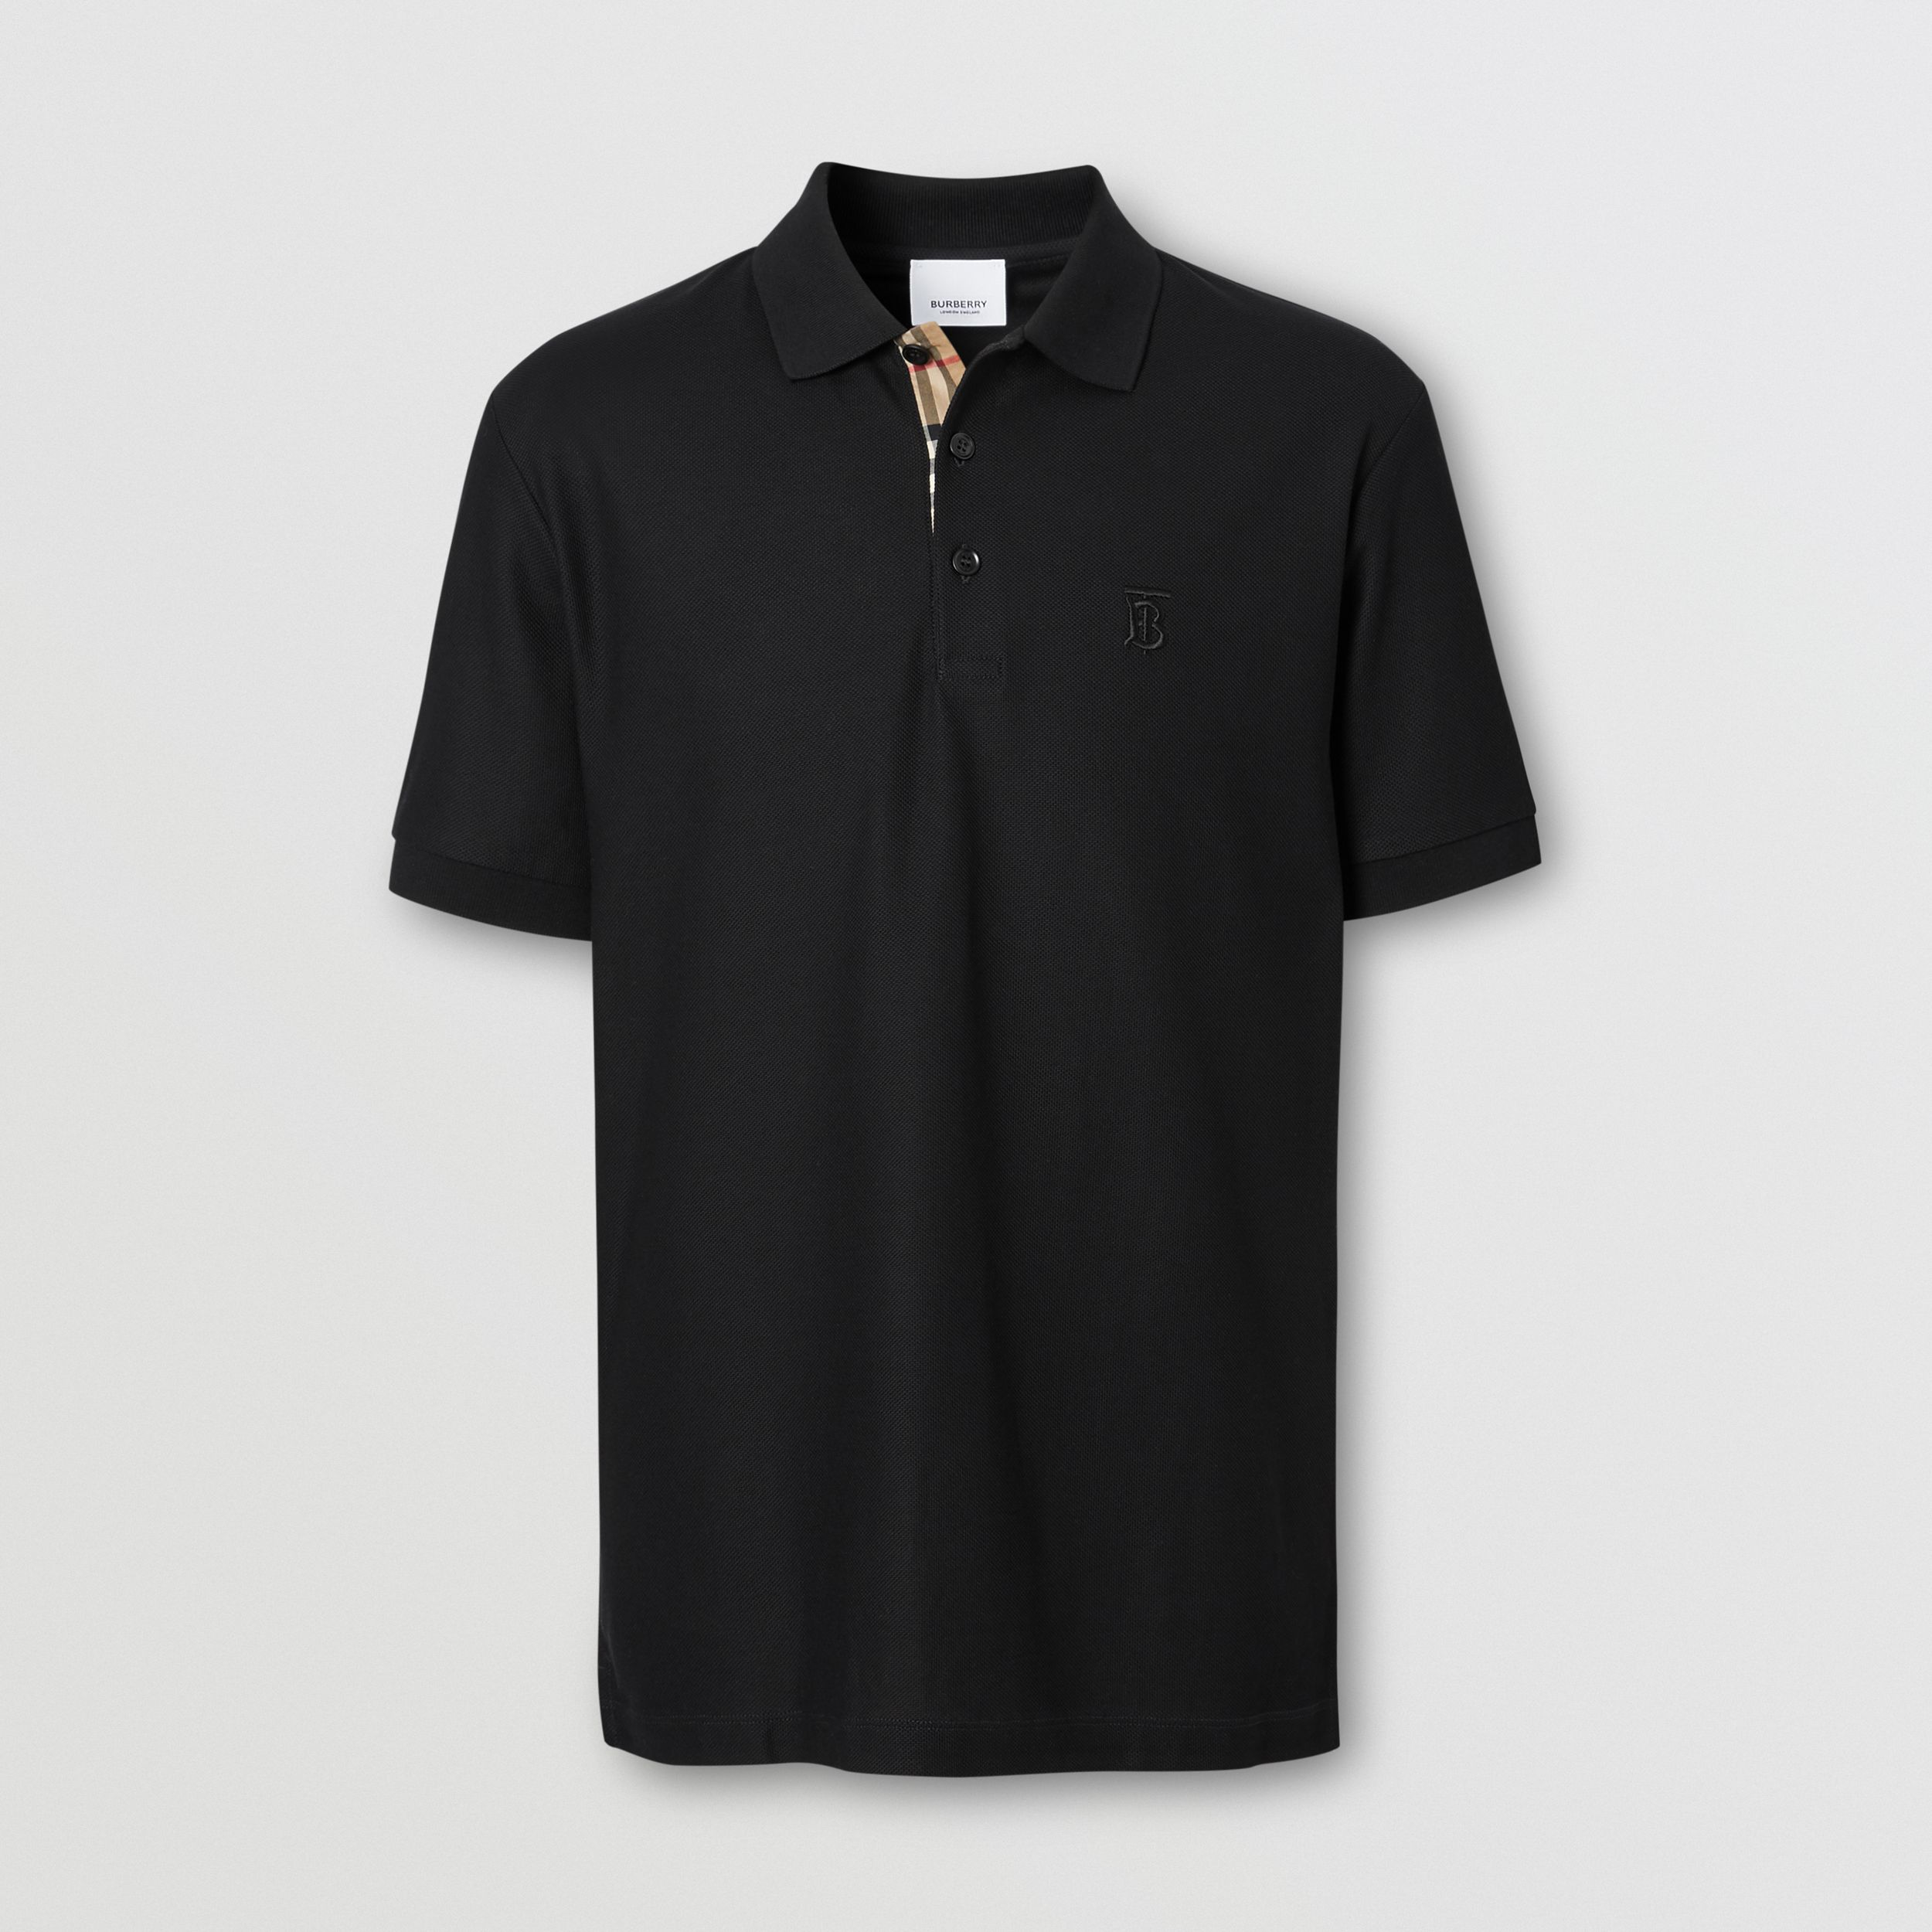 Monogram Motif Cotton Piqué Polo Shirt in Black - Men | Burberry Canada - 4